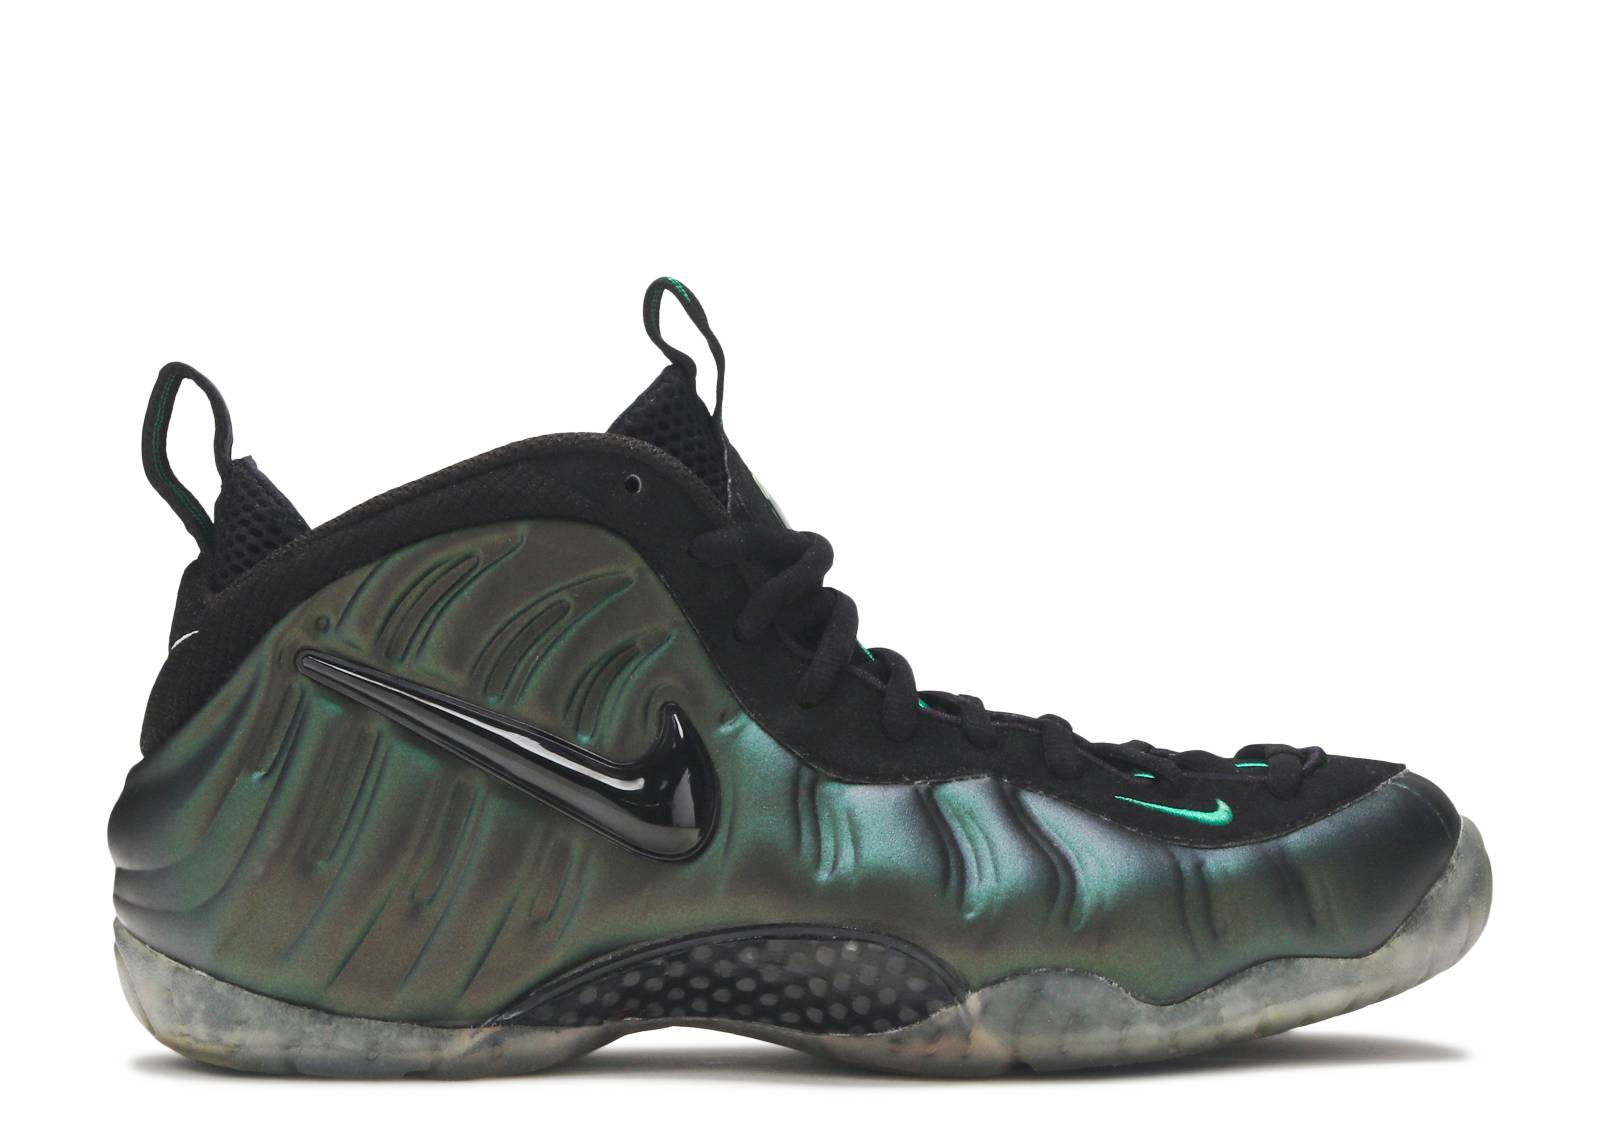 624041-301 Nike Air Foamposite Pro - Pine Green (pine green / black)